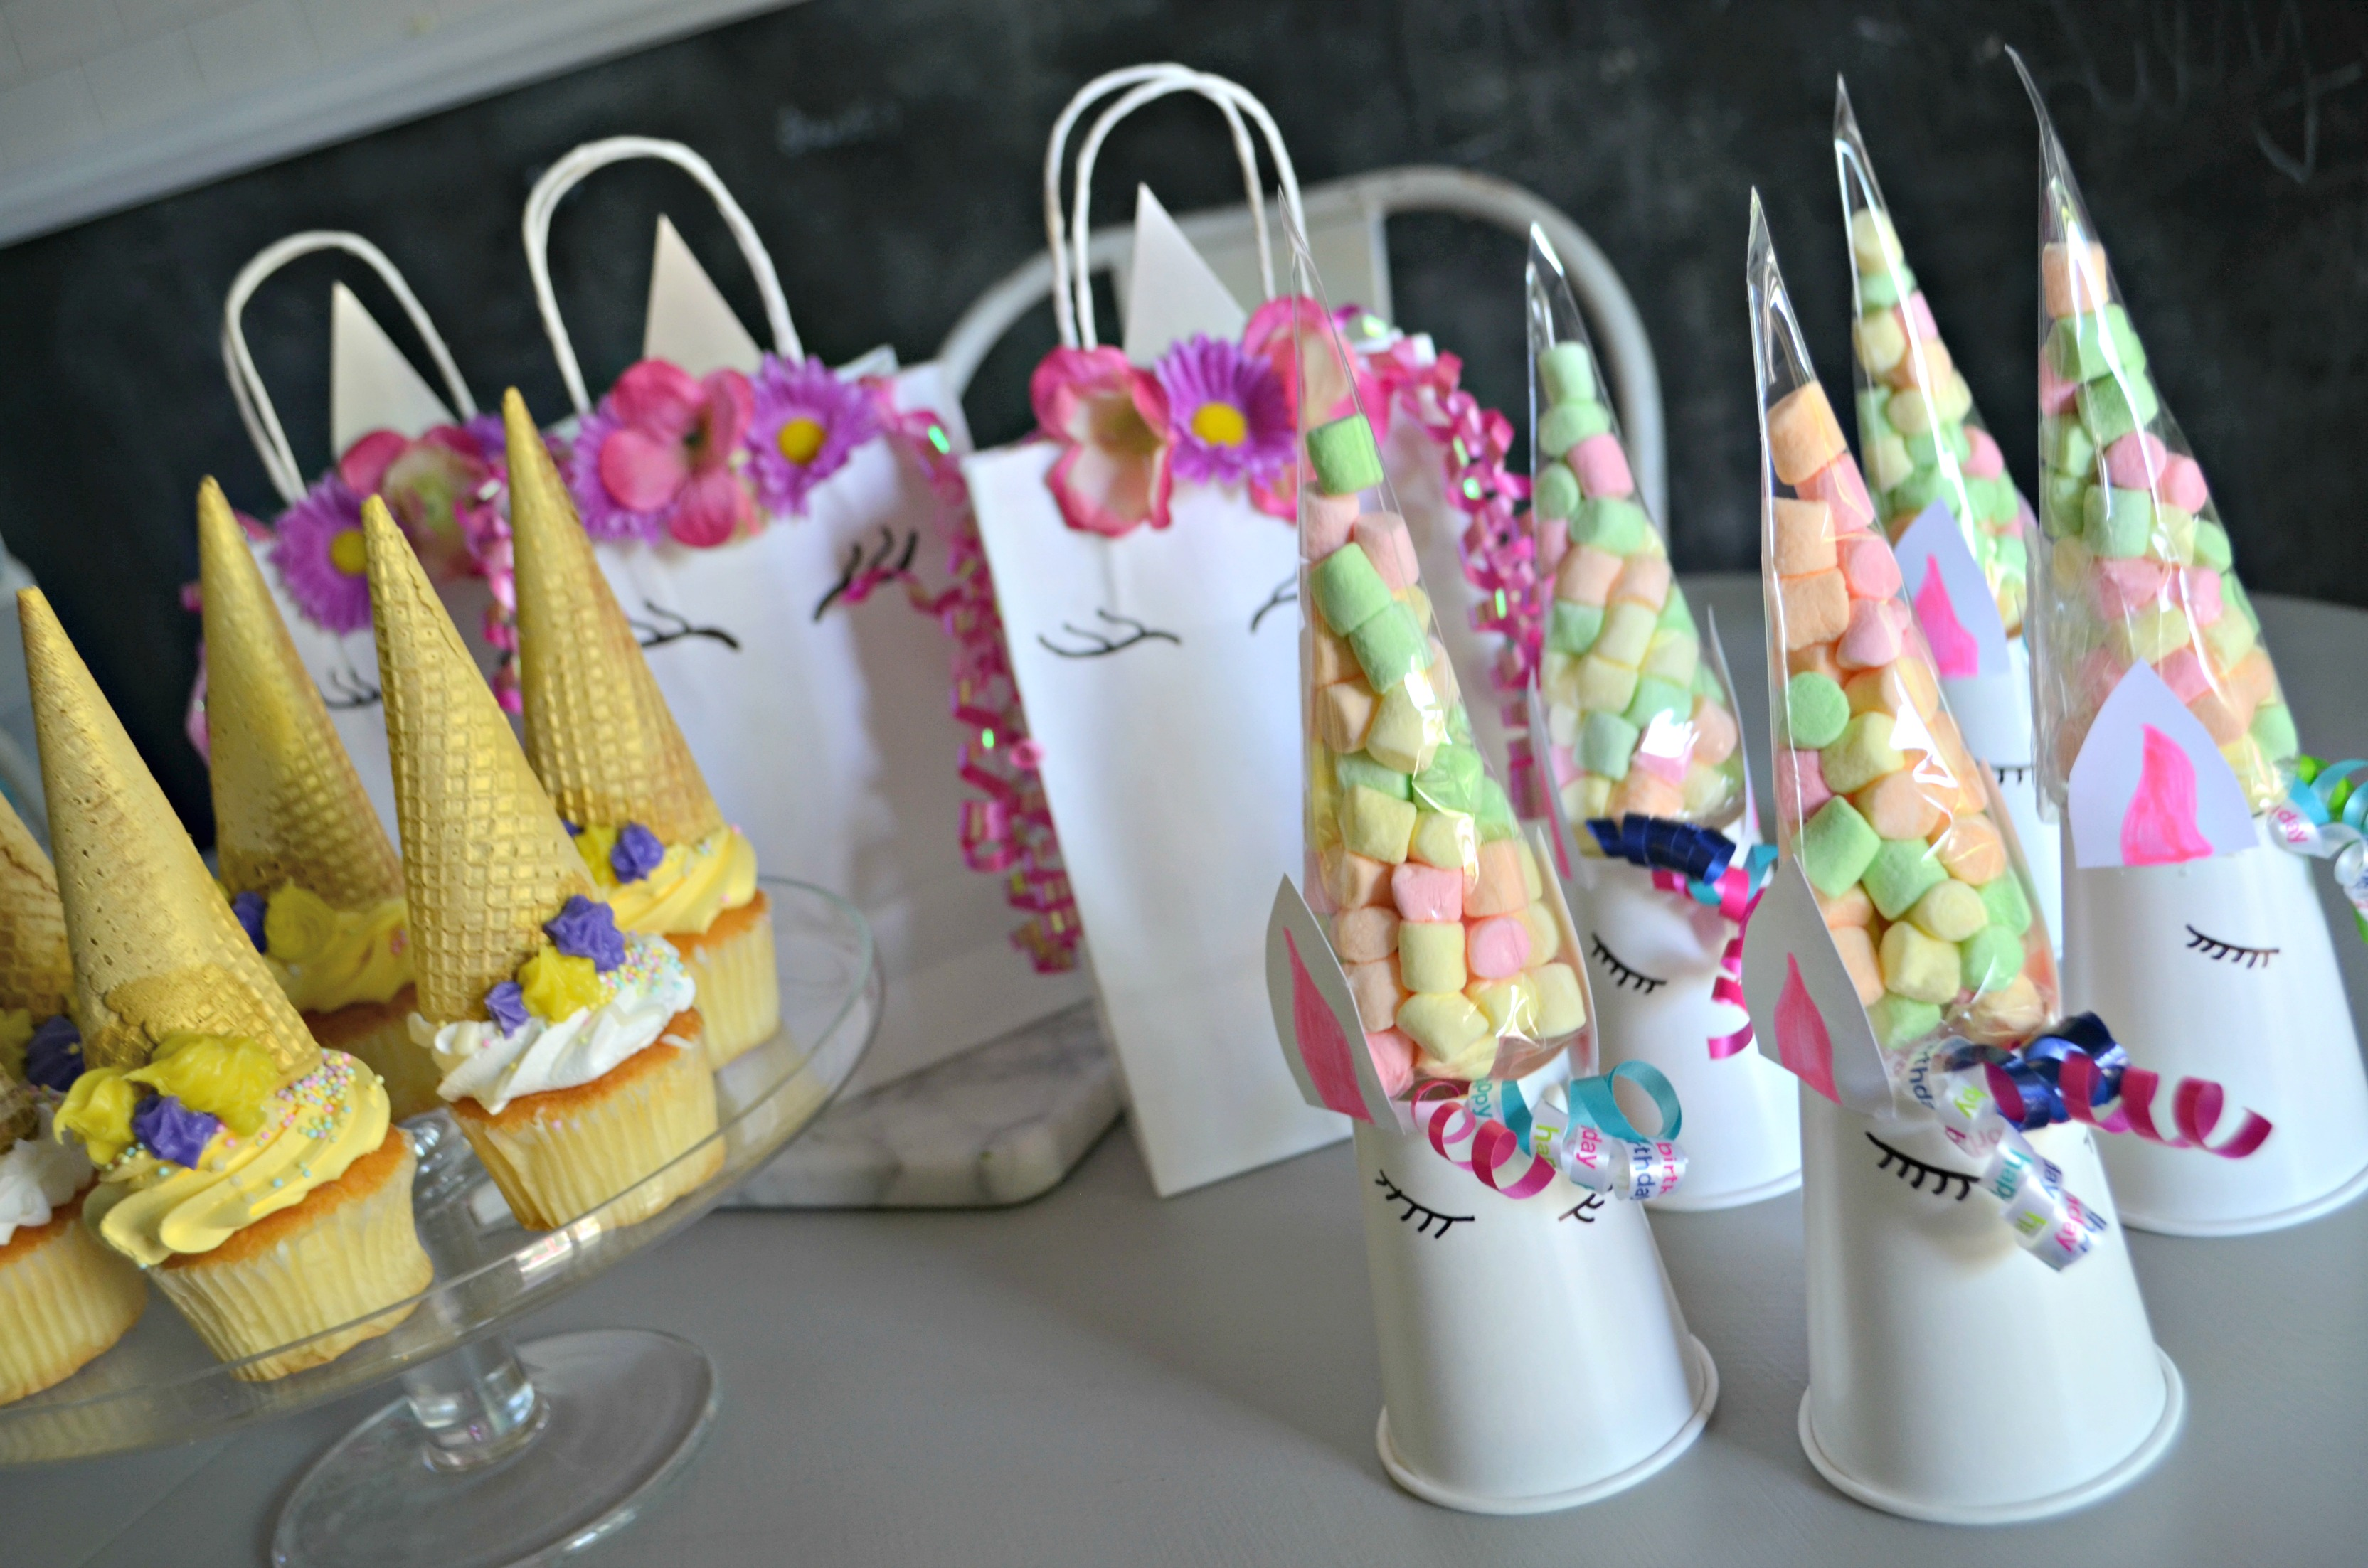 Simple prep is all you need for these easy DIY unicorn birthday party ideas.